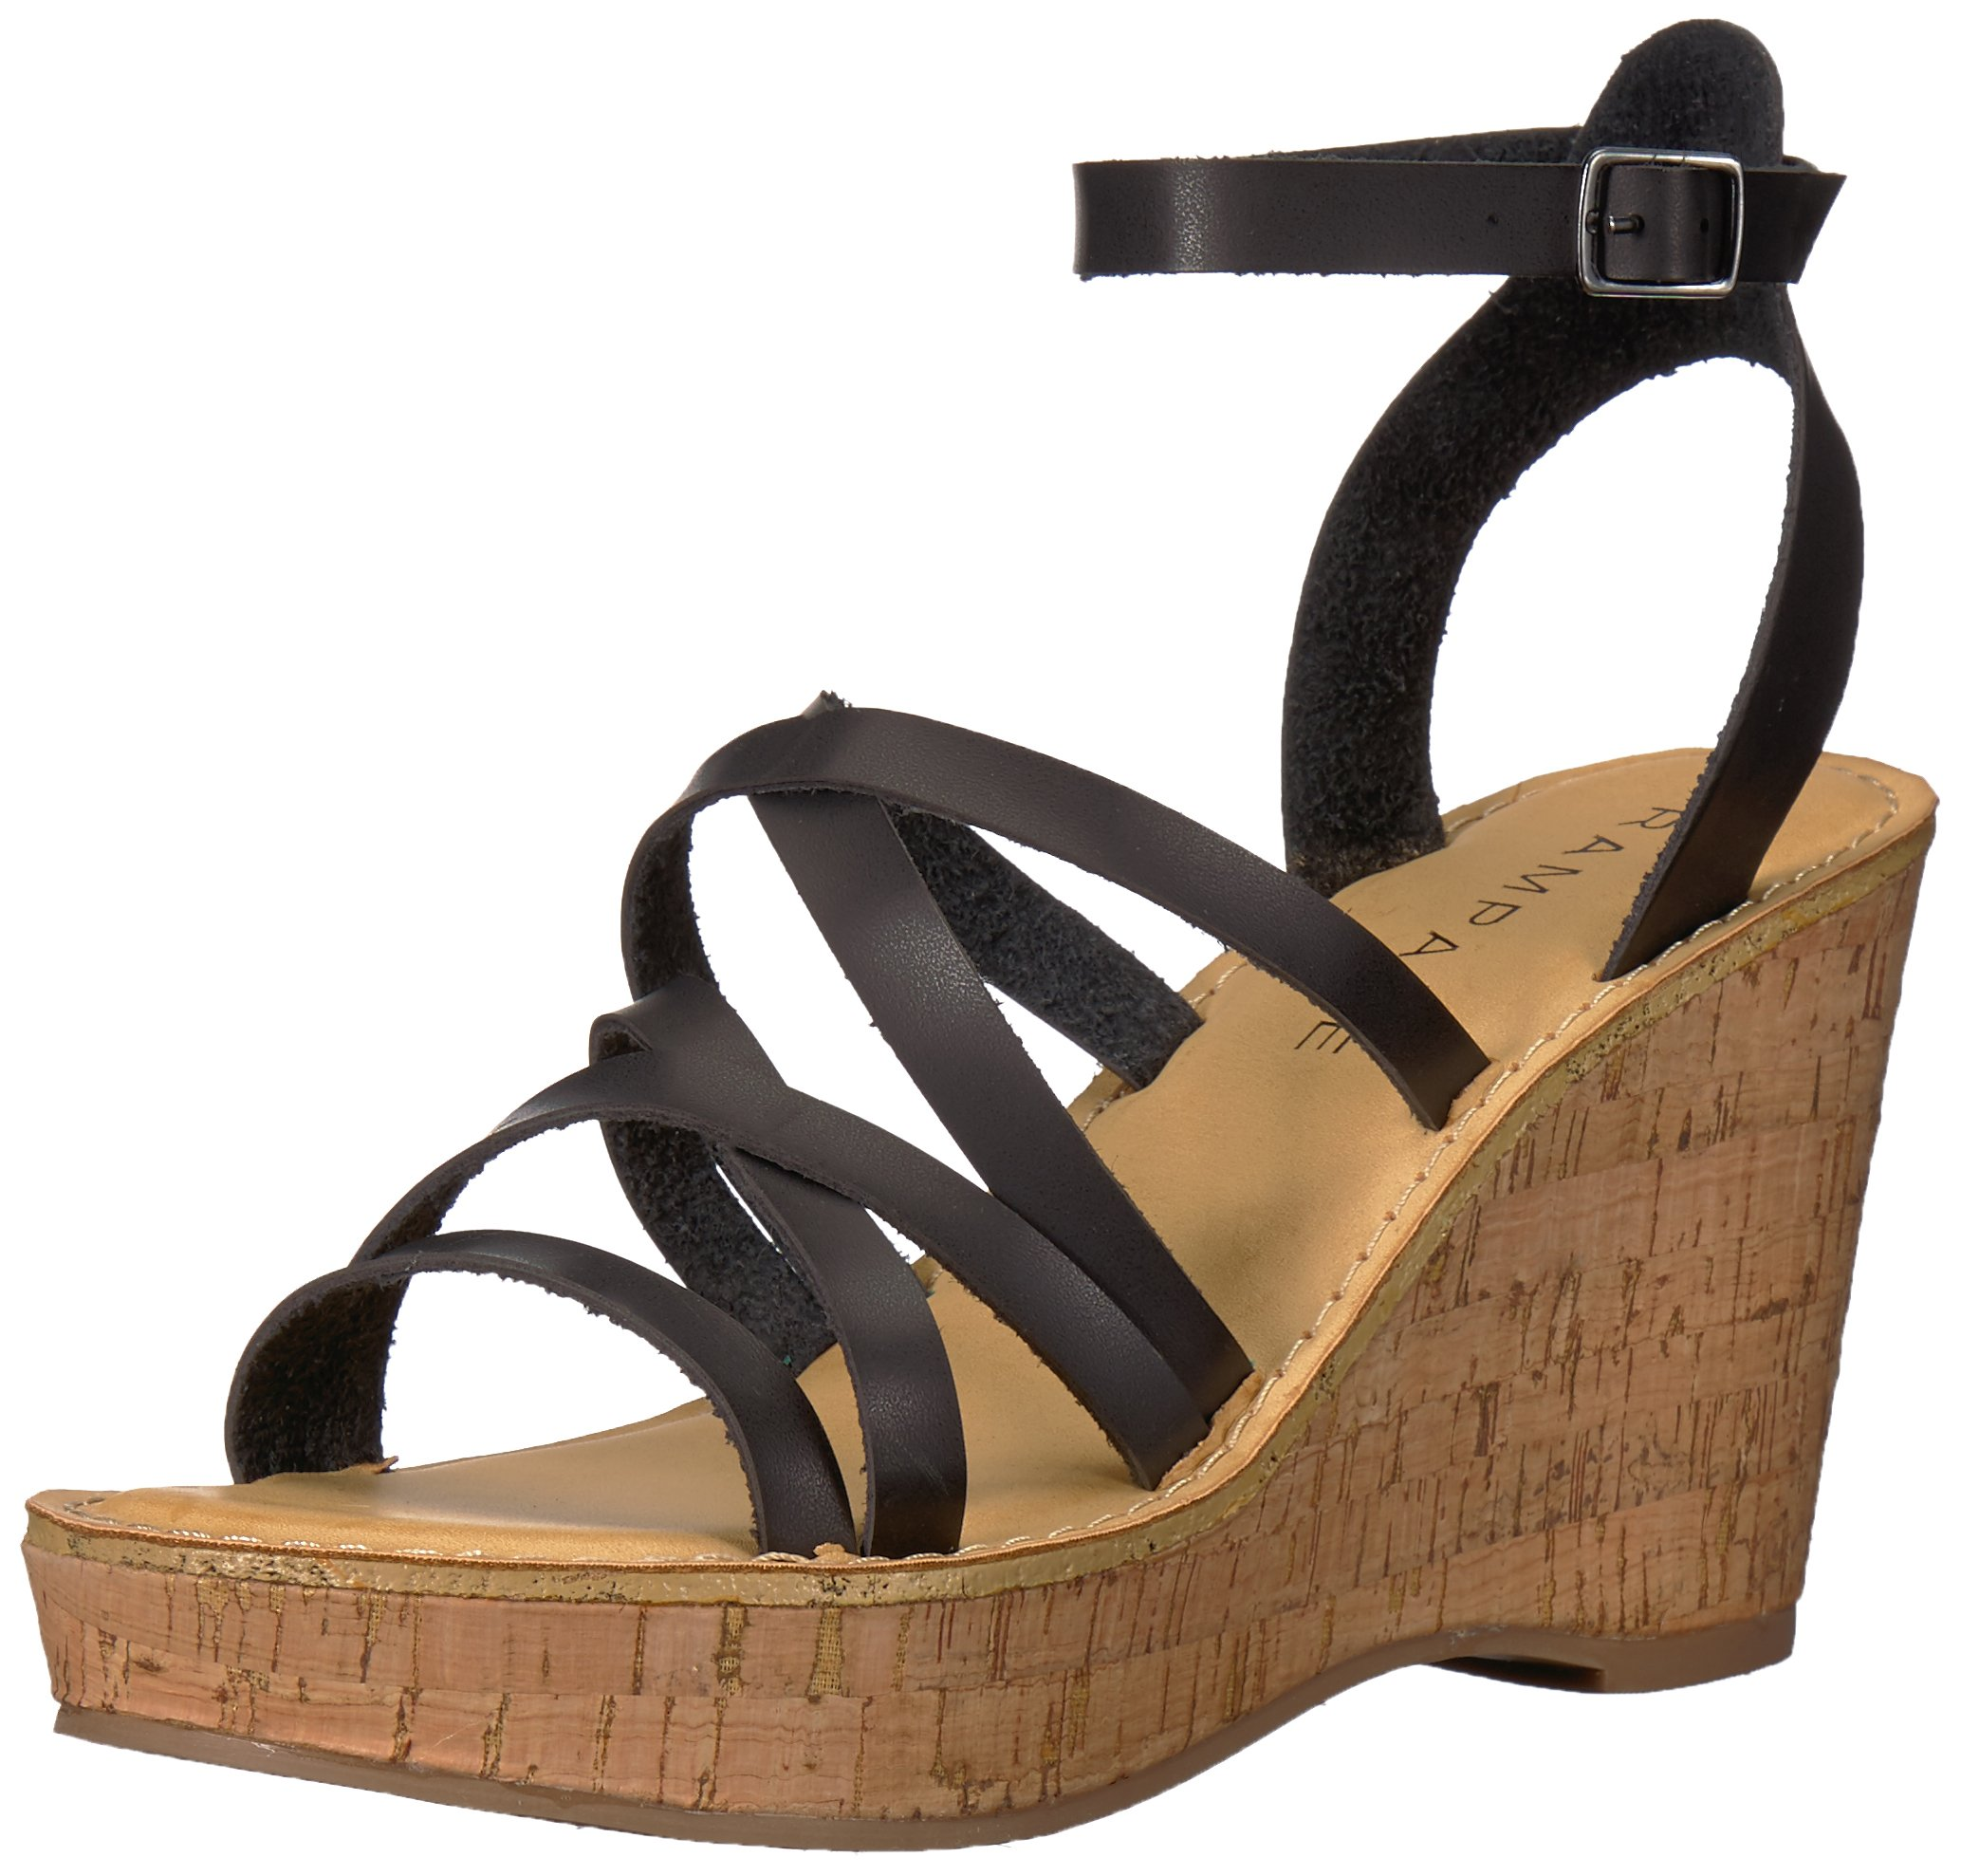 Rampage Women's Zaira Strappy Platform Cork Wedge Sandal, Black Burnish, 9.5 M US